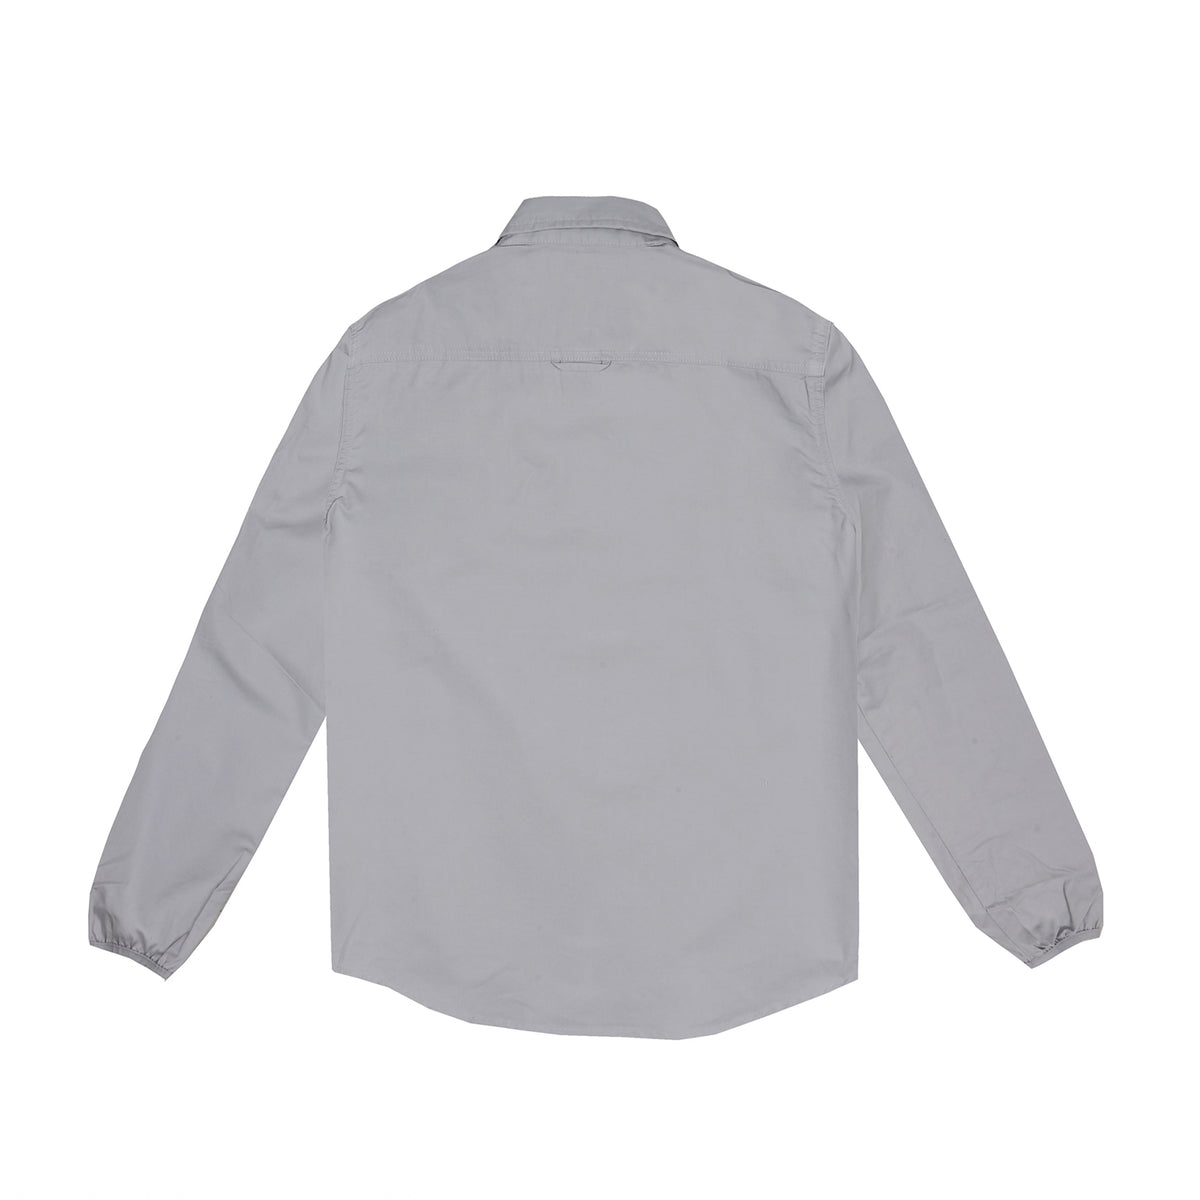 CAPE HEIGHTS - HYAK SHIRT - QUARRY